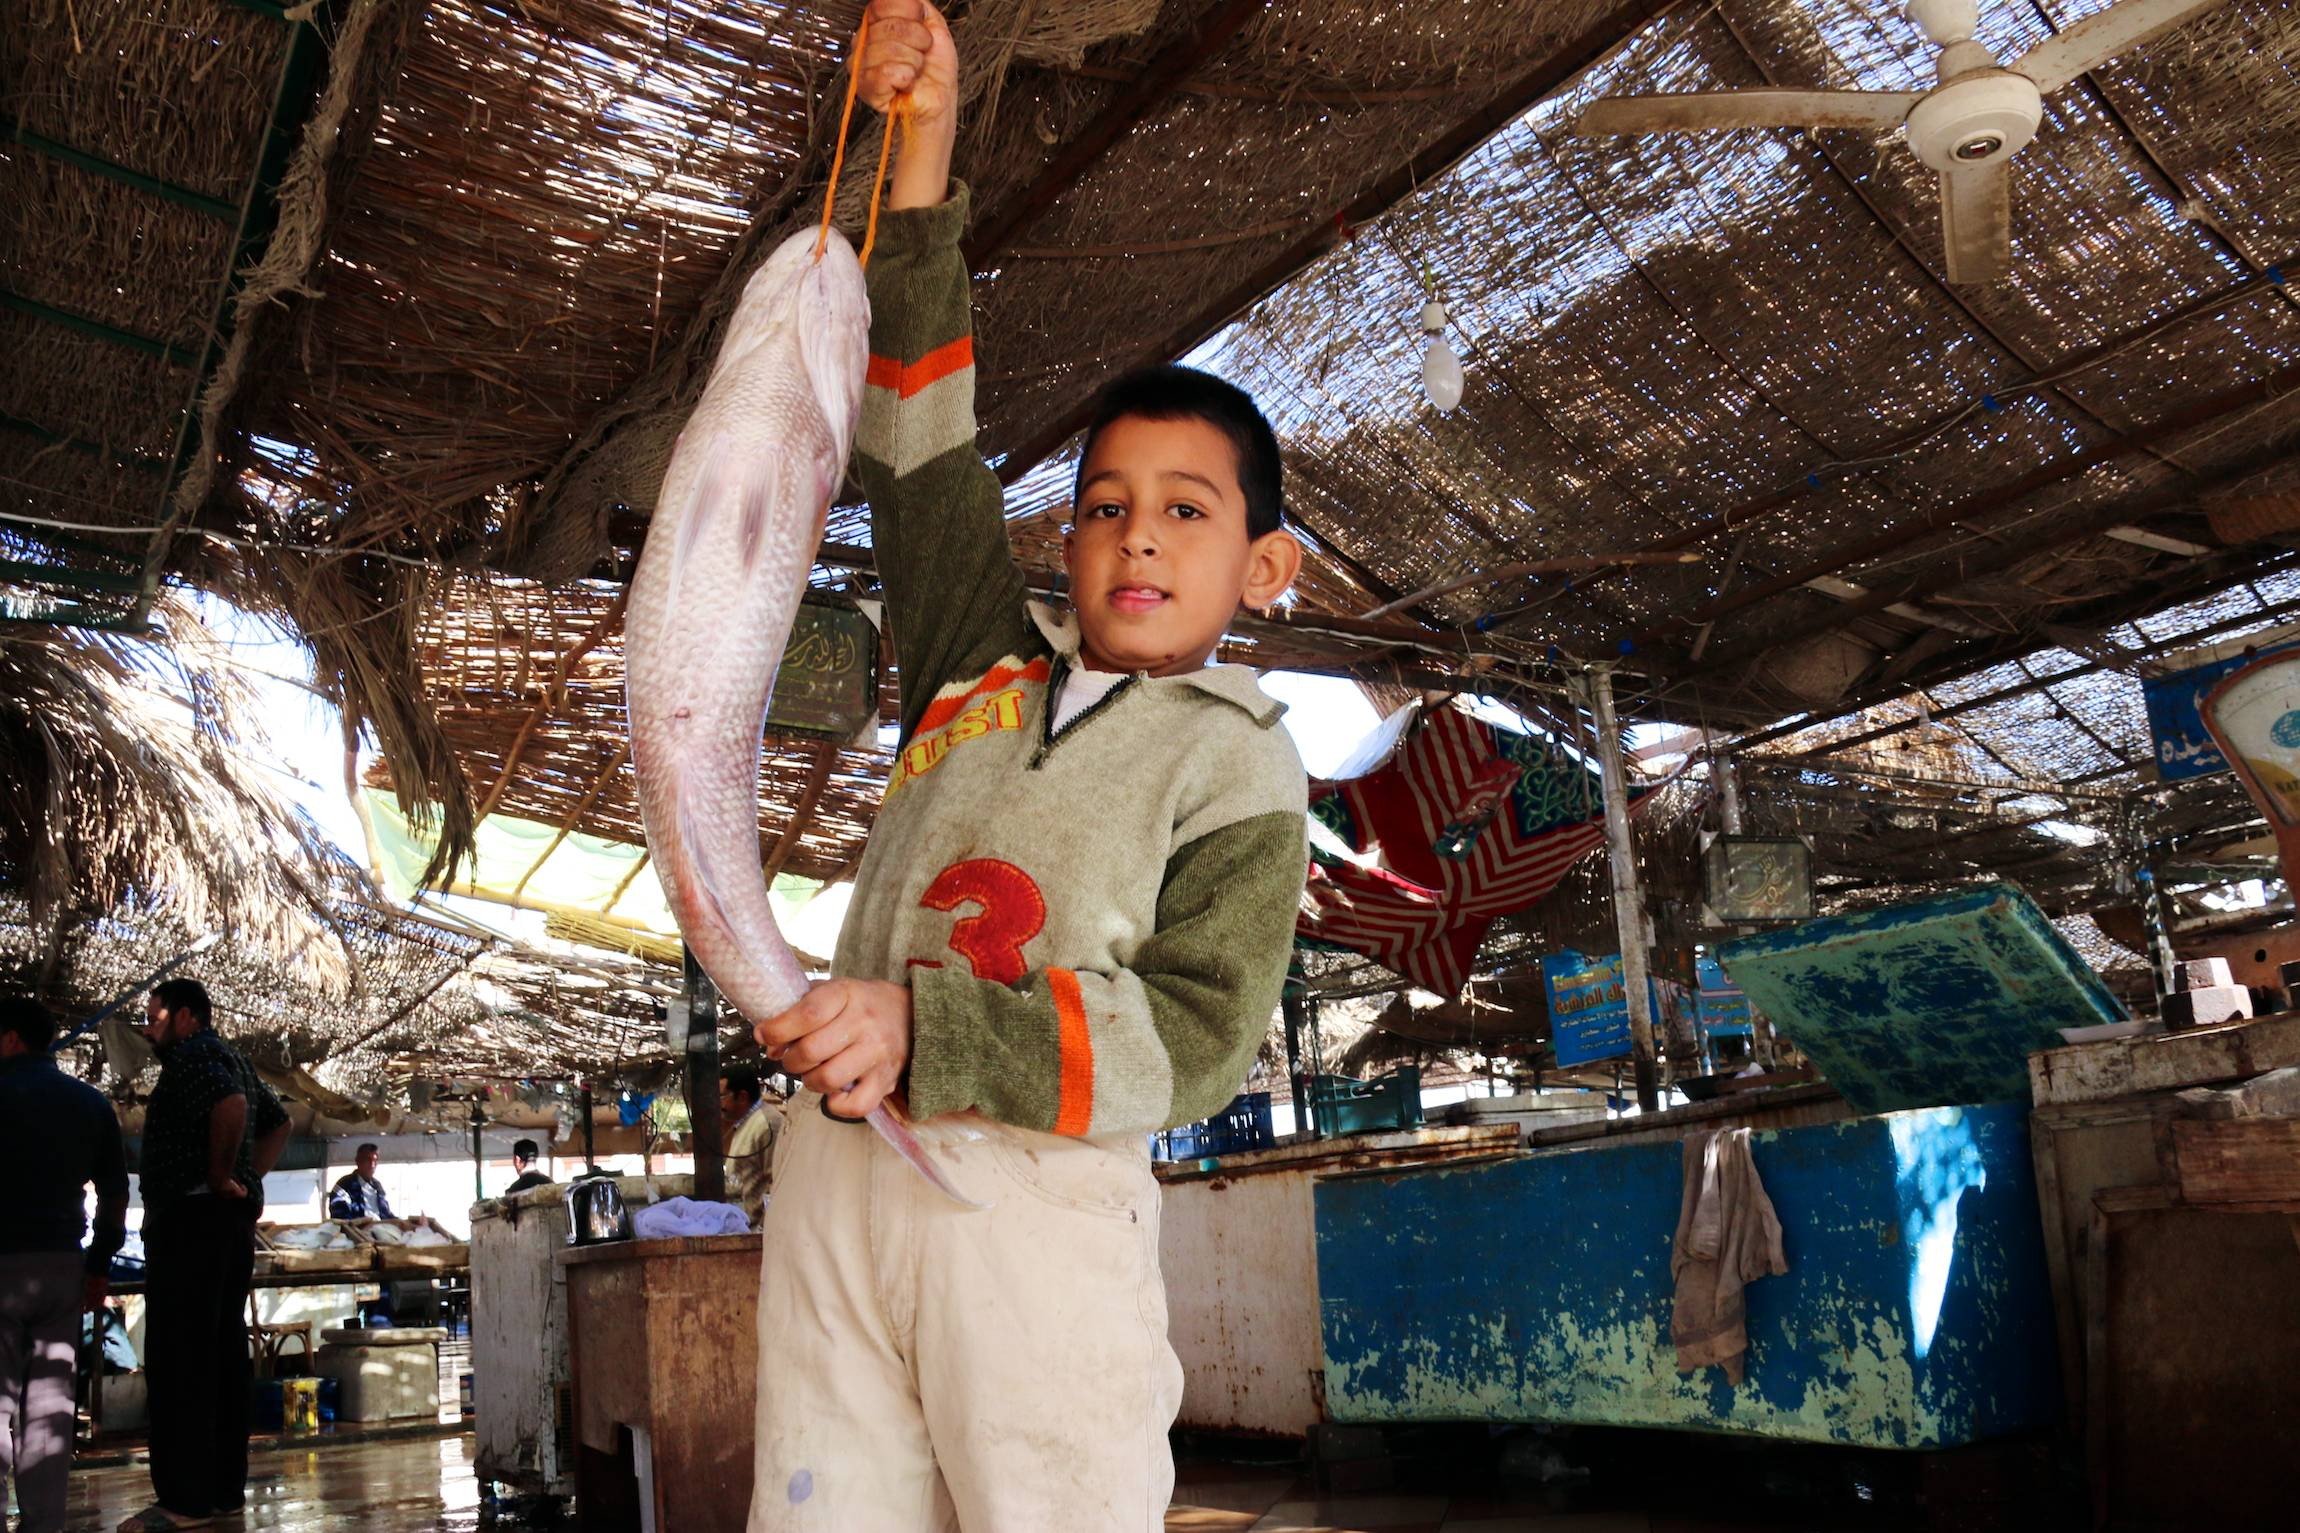 A child holds a fish in El Quseir, Egypt, Jan. 3, 2014.